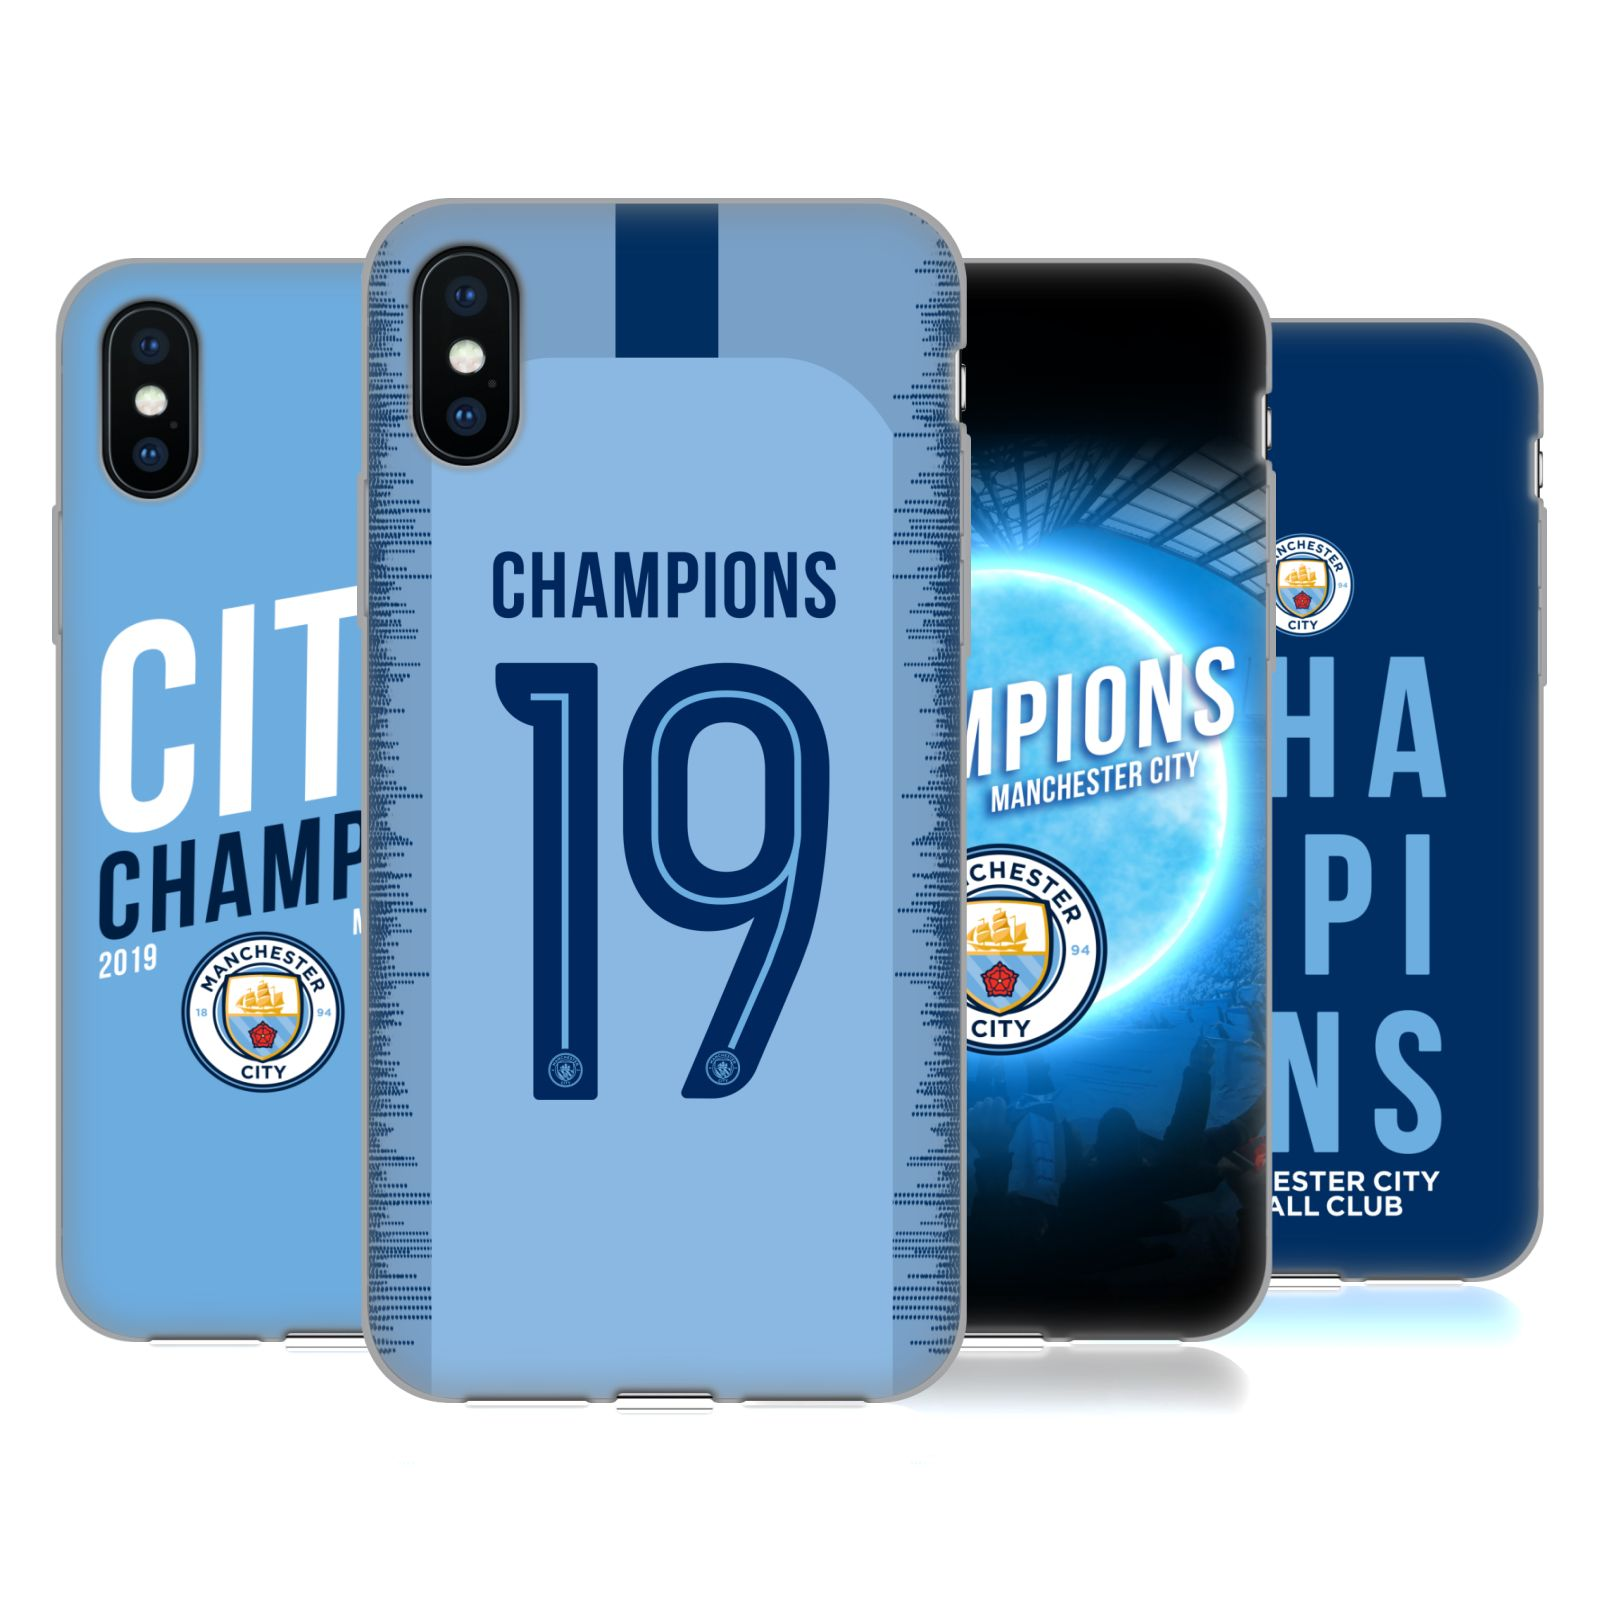 Manchester City Man City FC <!--translate-lineup-->2019 Champions<!--translate-lineup-->